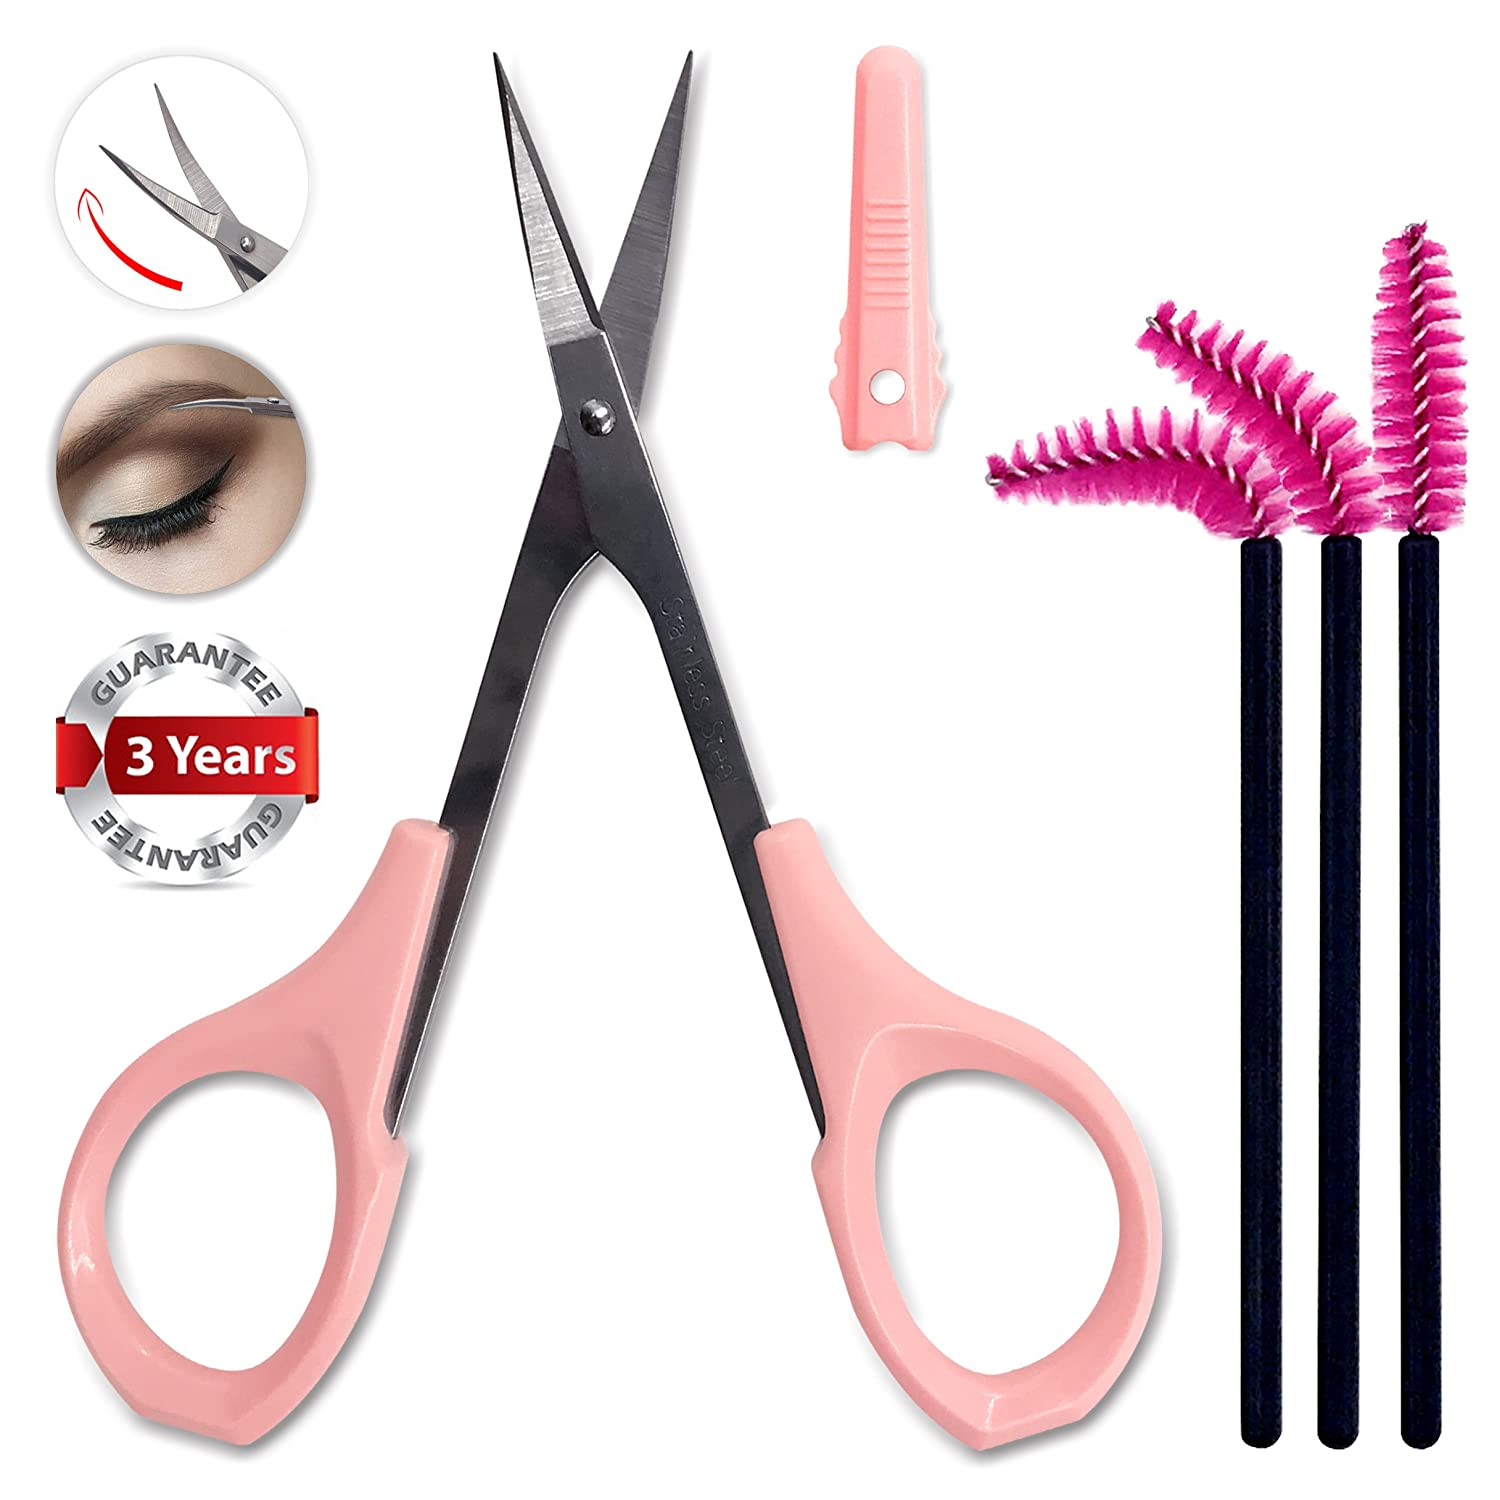 Small Nail Scissors Curved Sharp for Trimmer Precision Craft Shear Ingrown Toenail Cuticle Eyebrow Grooming Sewing with Safe Protective Cap by Tidawave